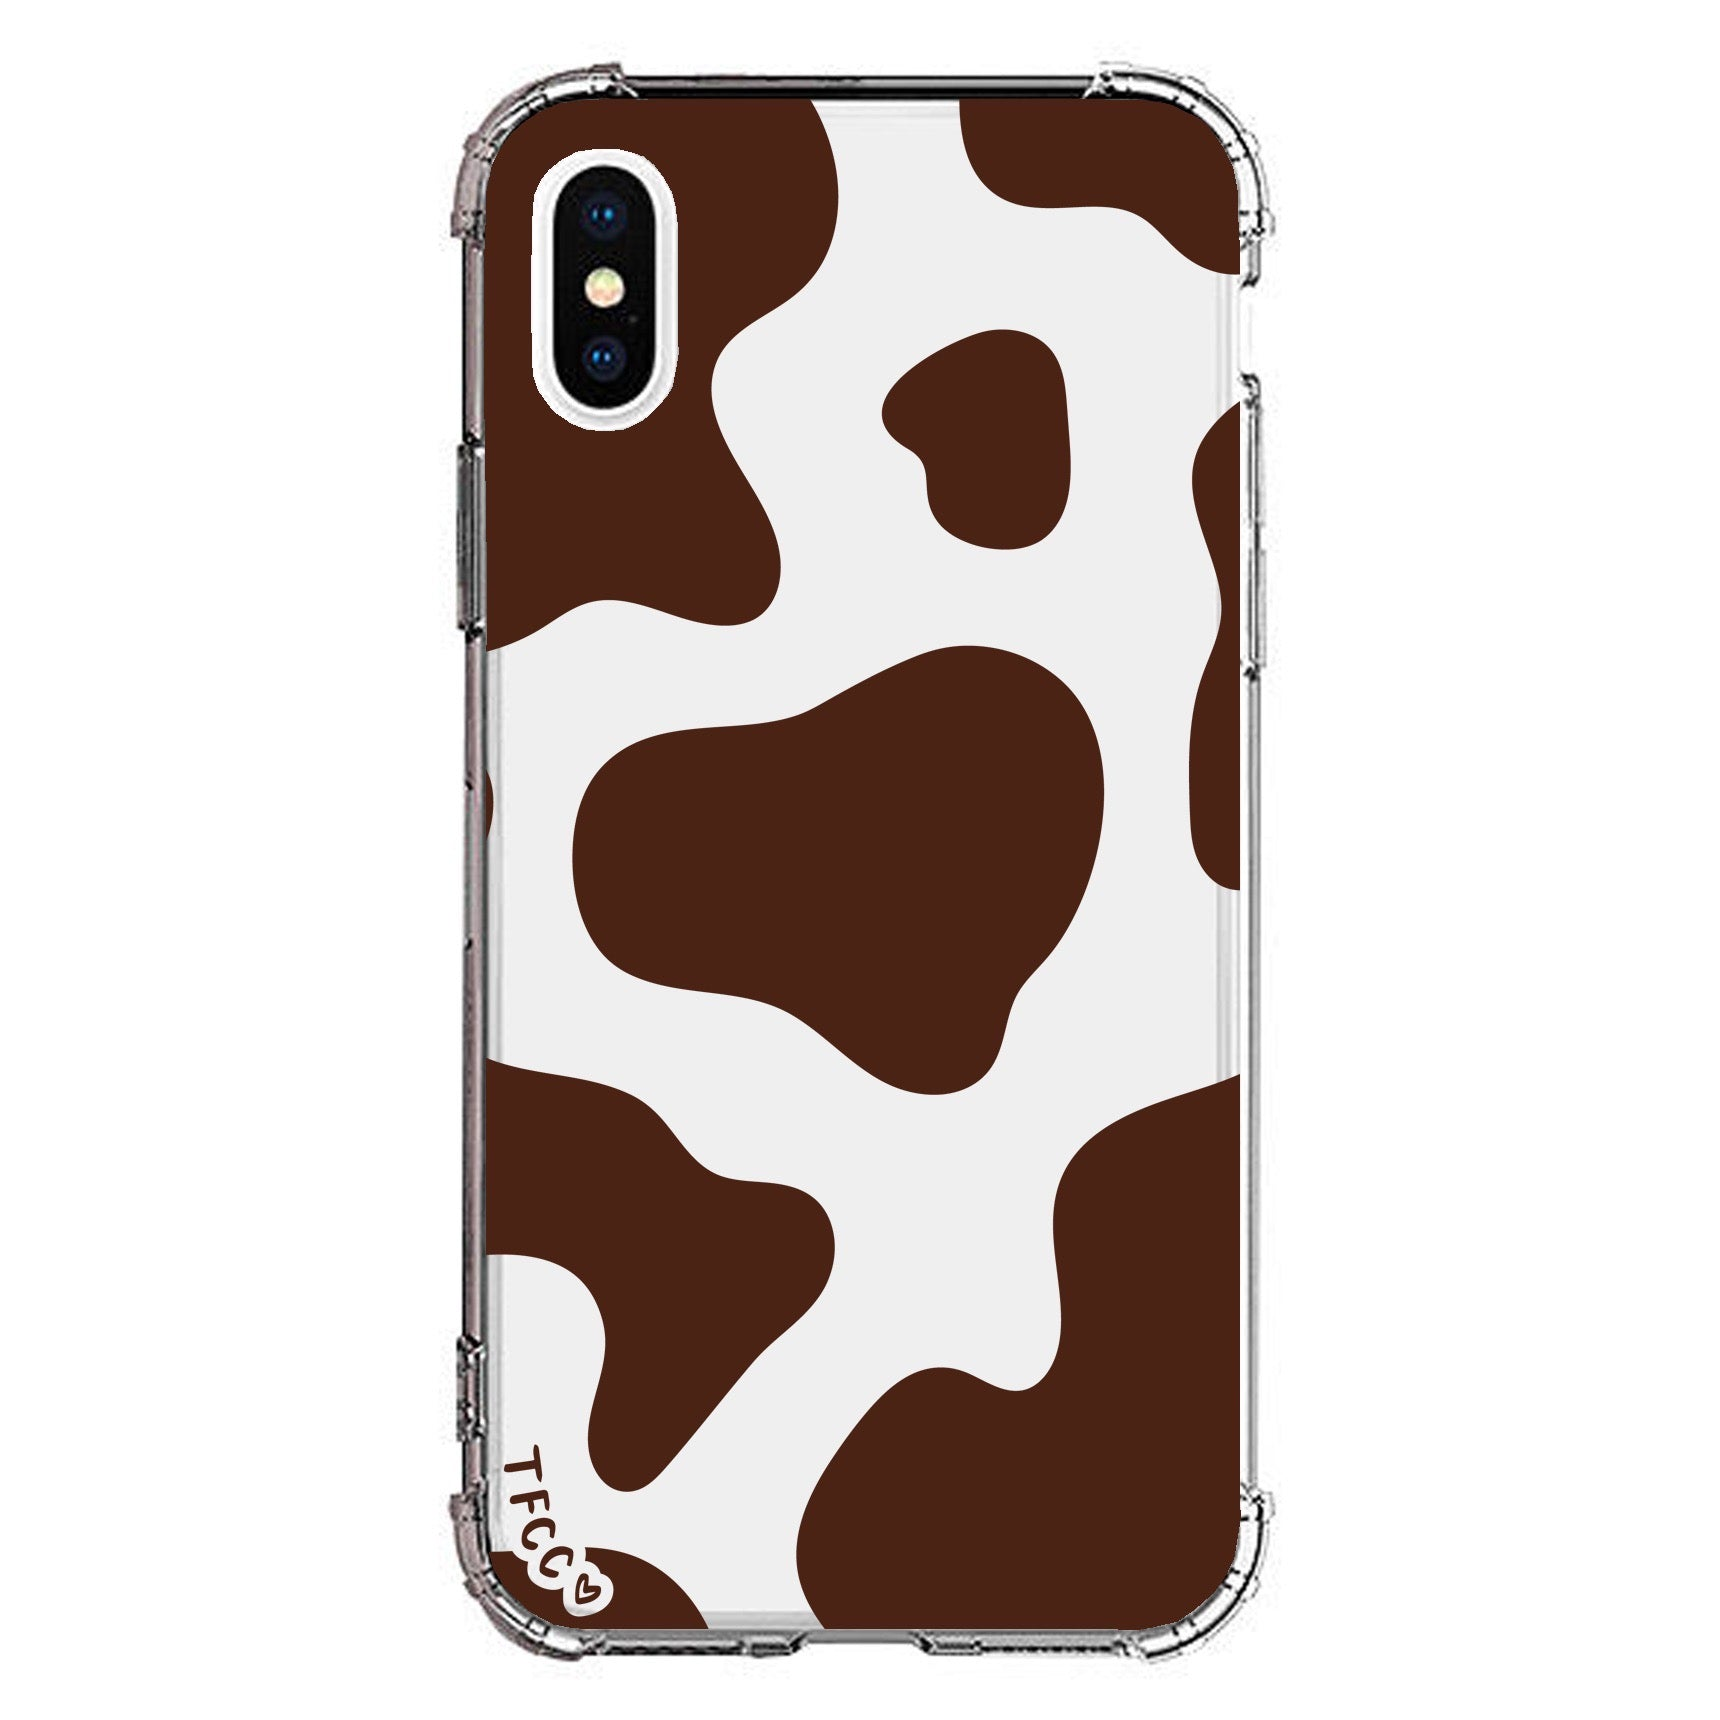 COW PRINT BROWN CLEAR CASE - thefonecasecompany